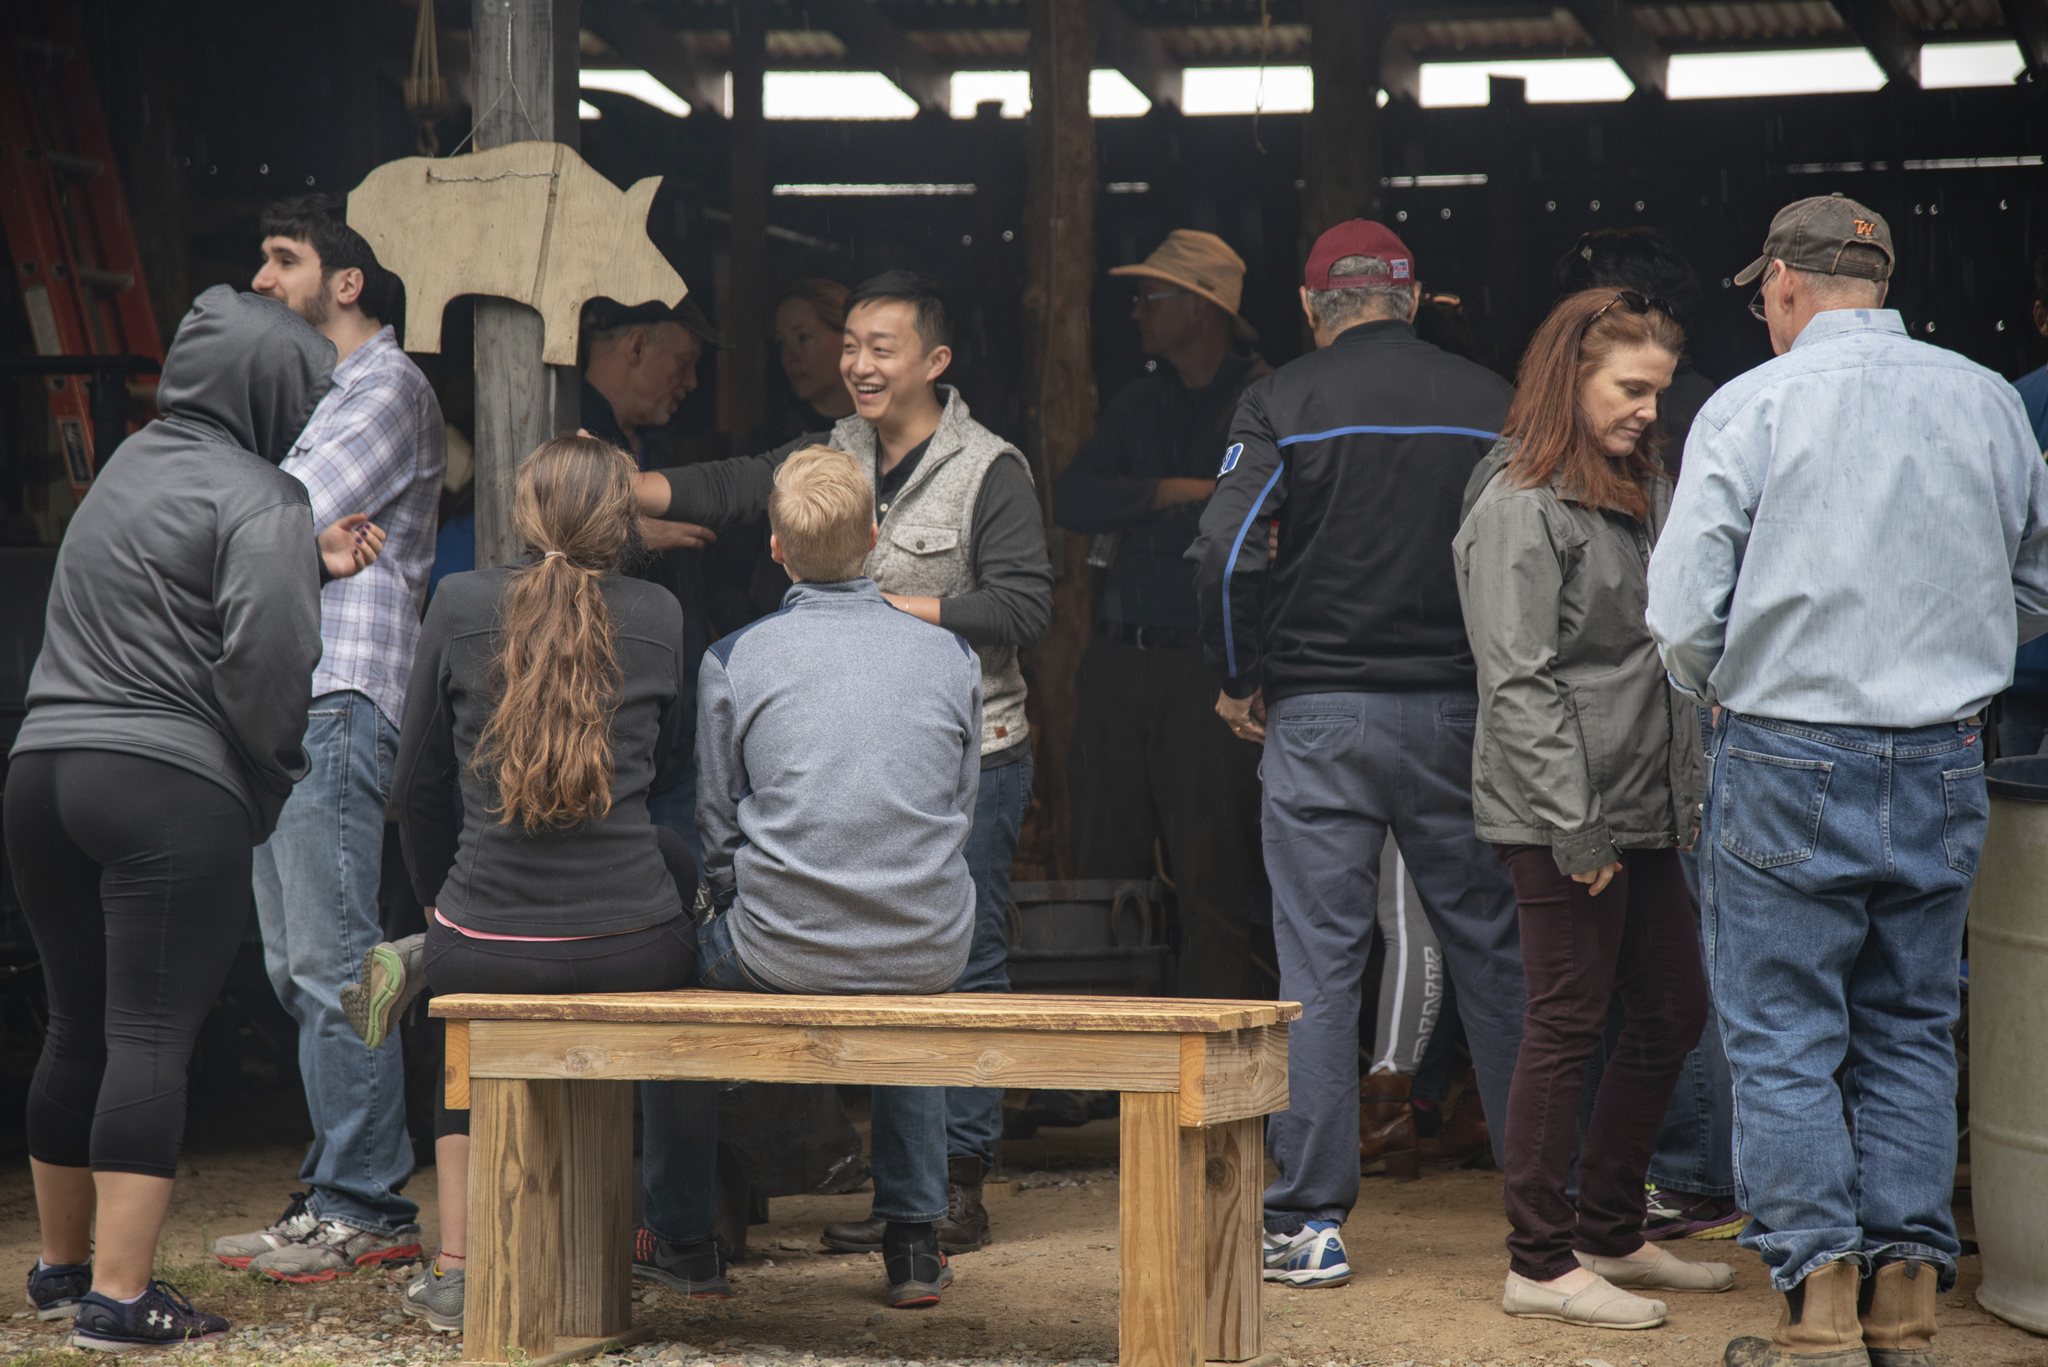 party goers gather under the shelter of the barn during a period of light rain